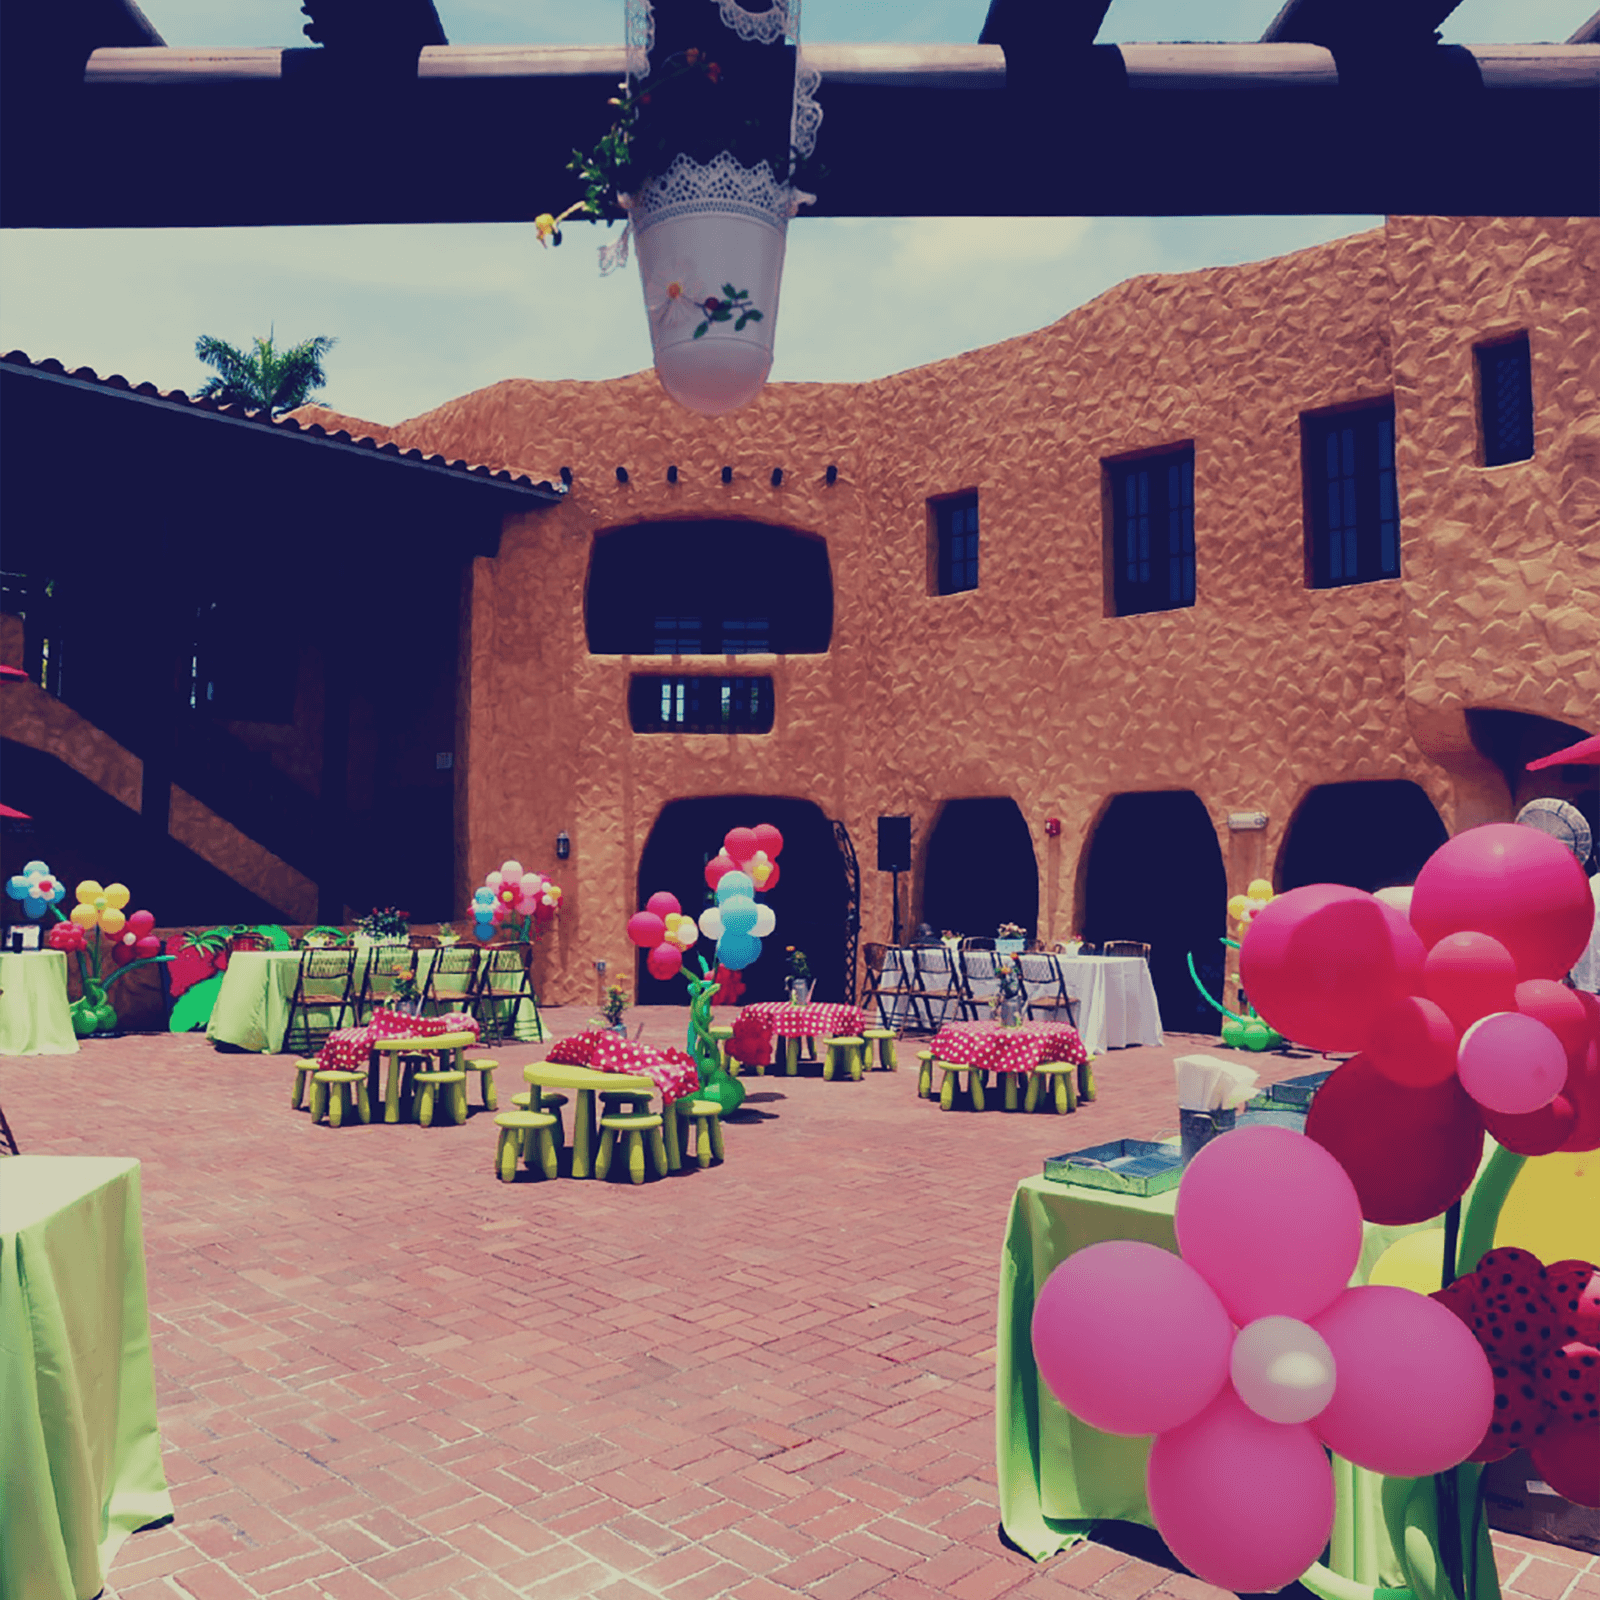 The Mansion Courtyard is perfect for kids, fun, ice cream and cake.